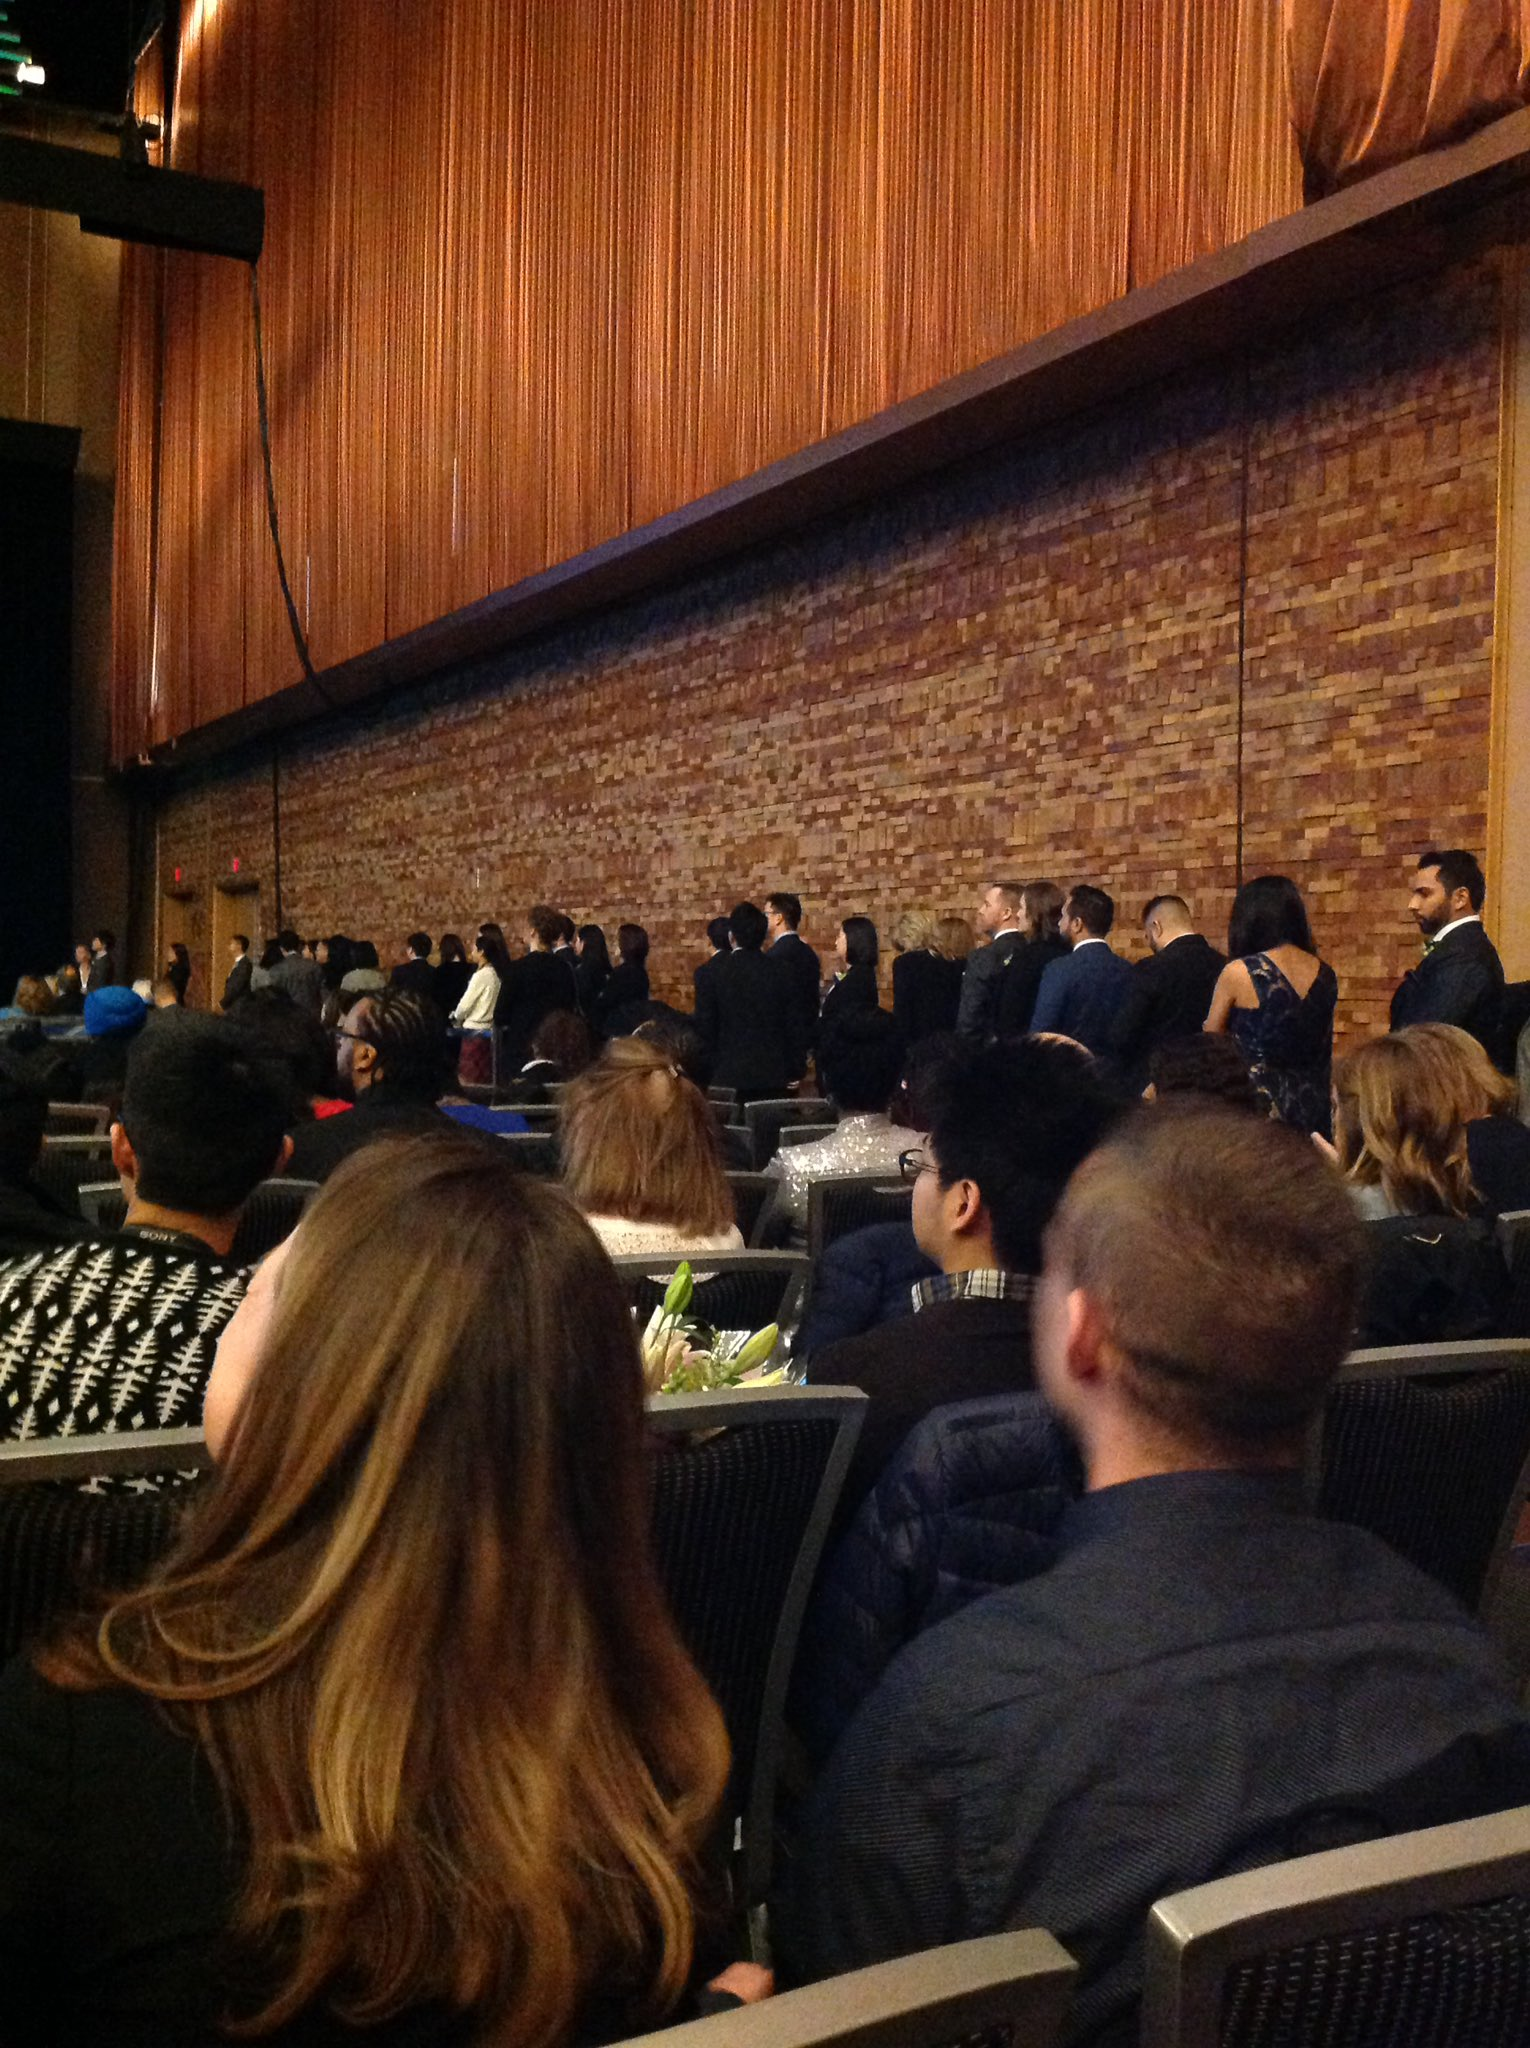 Graduates lining up to take the stage at CPABC's convocation. Congrats to you all! #CPABCGrads https://t.co/QViXkVFg8e